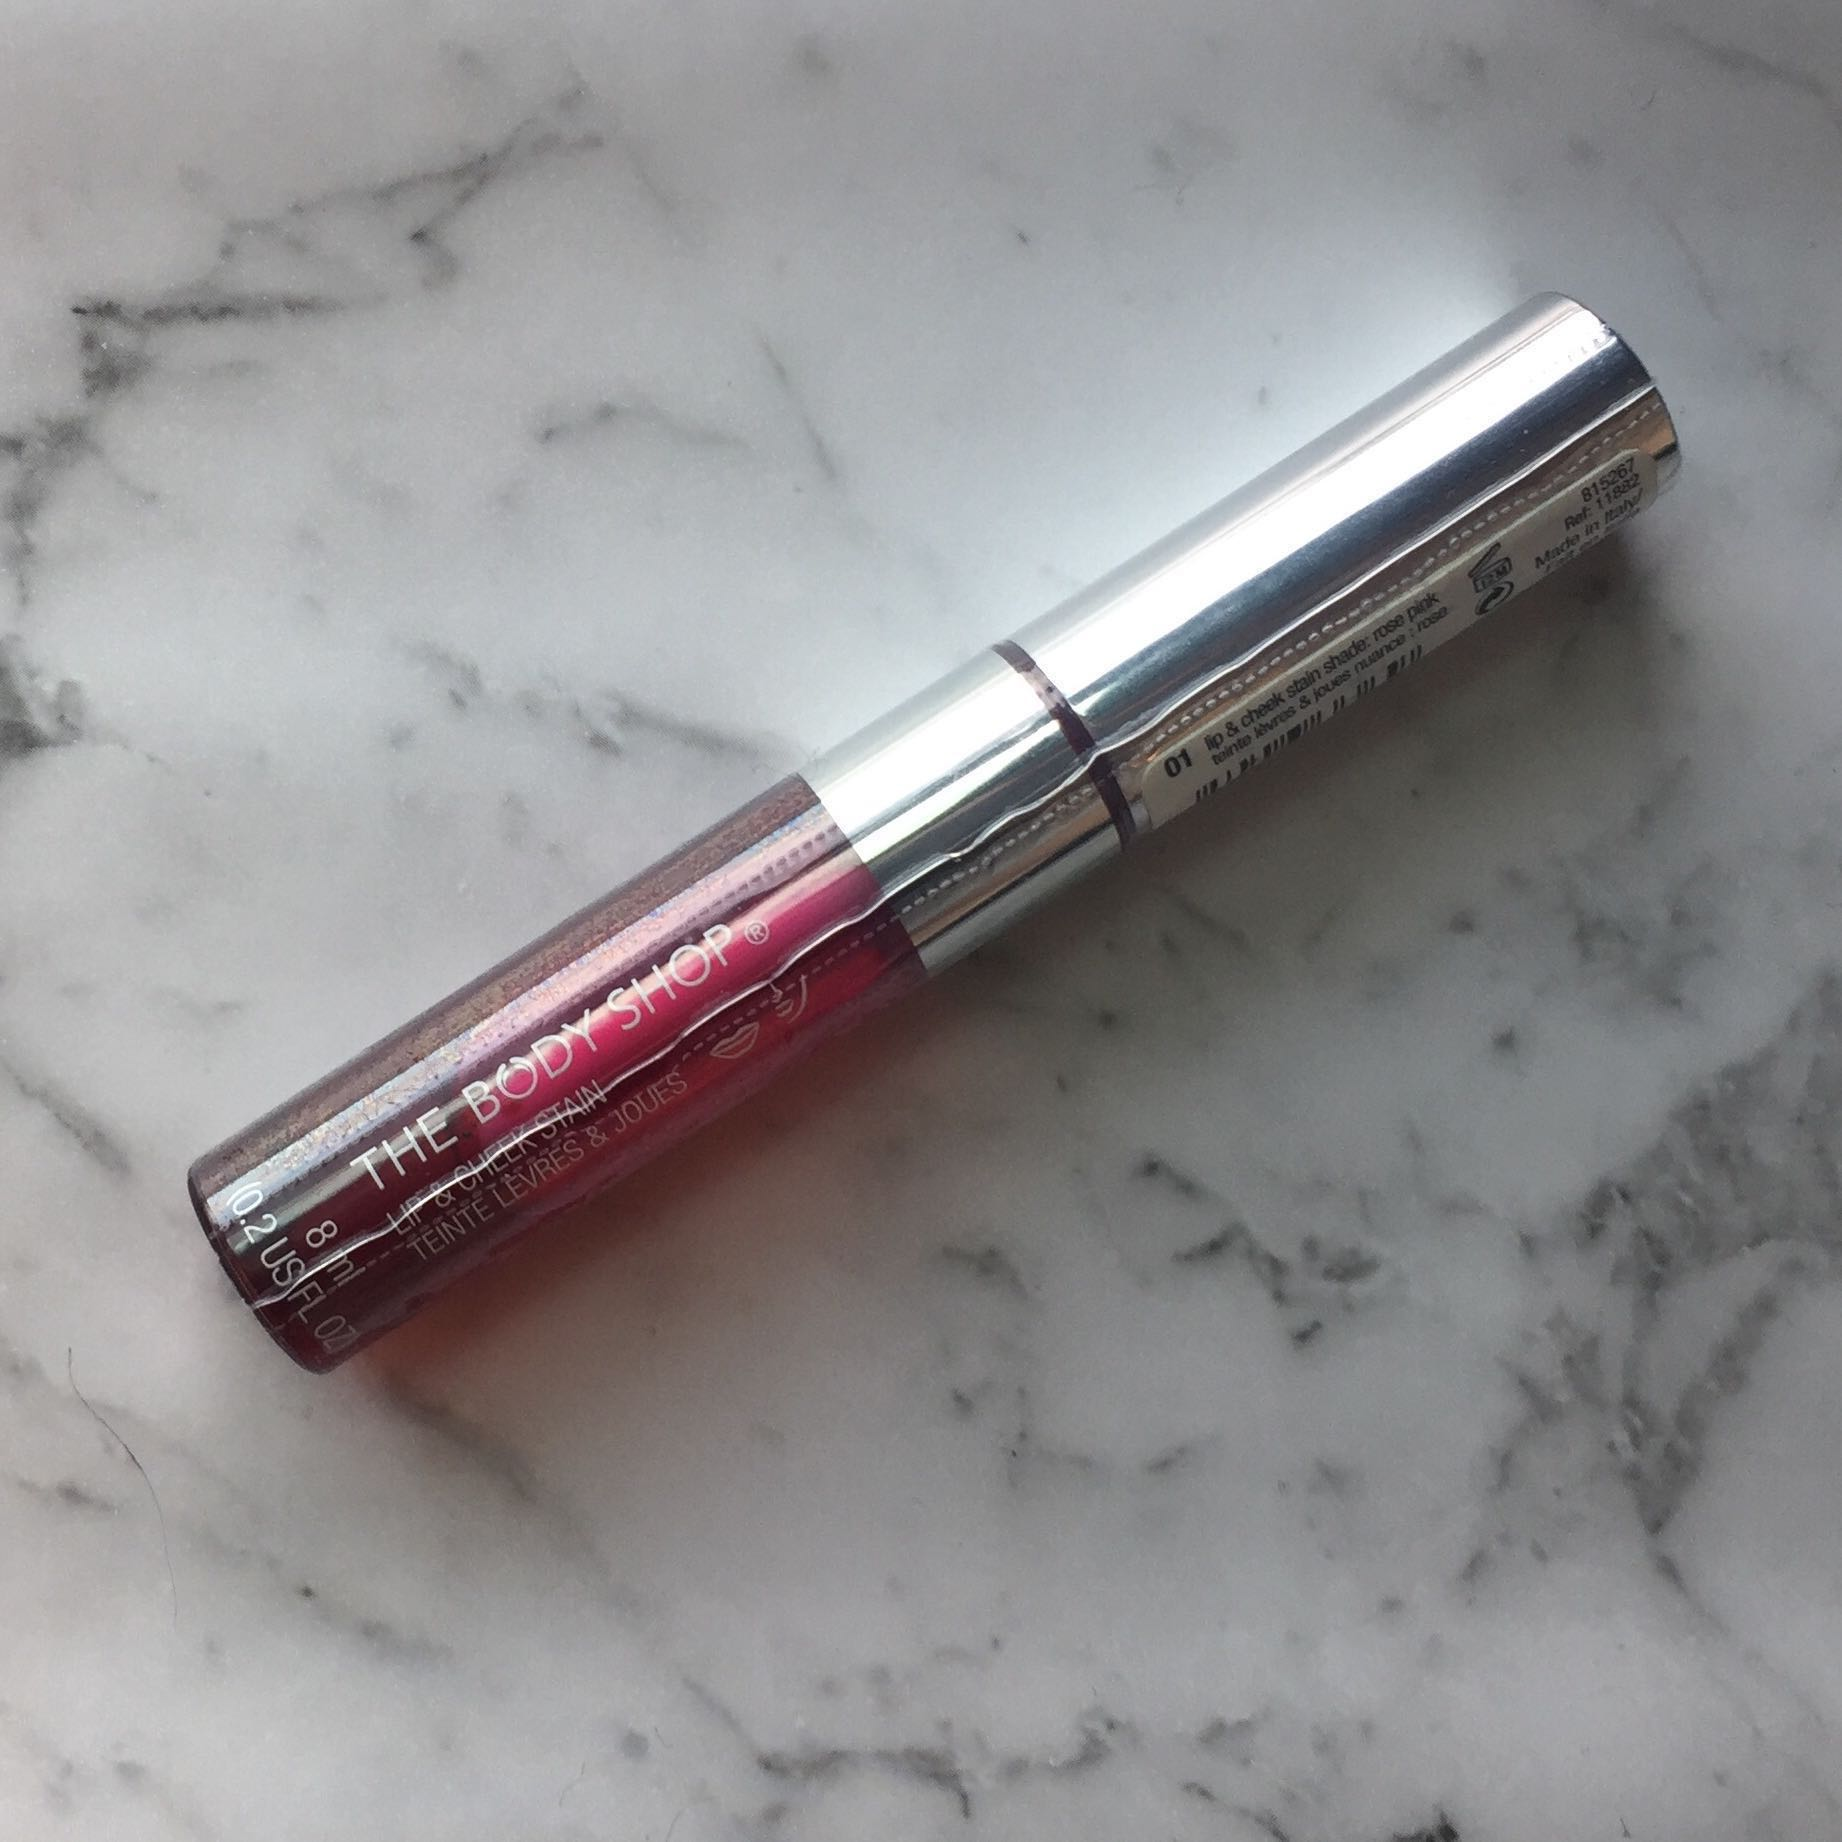 The Body Shop Lip Cheek Stain In 01 Health Beauty Makeup On